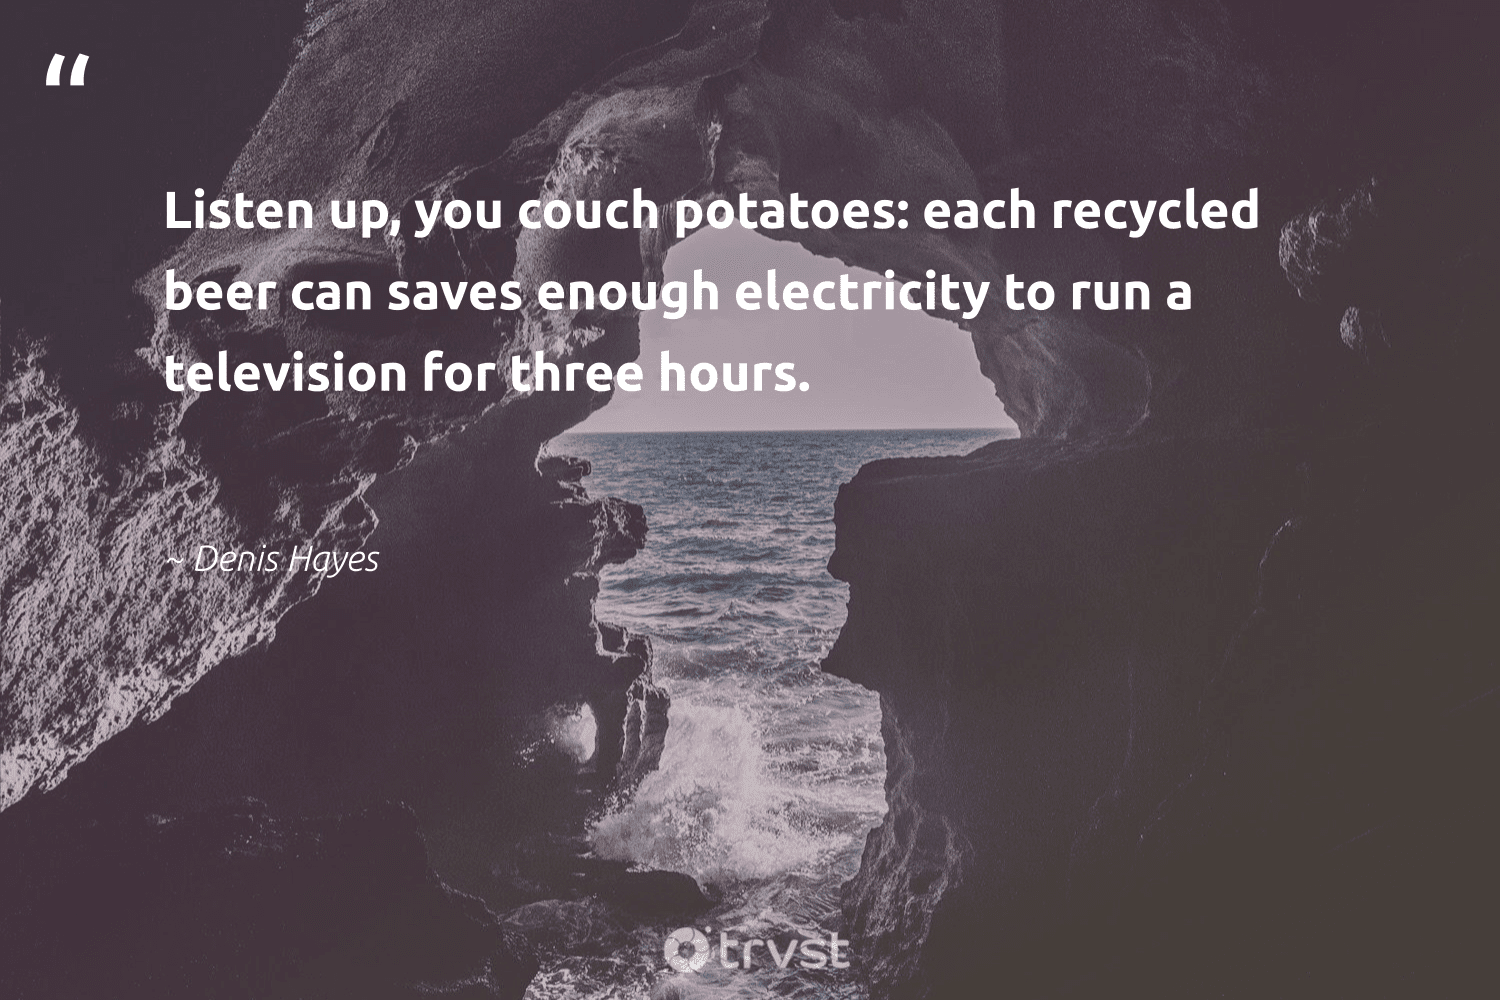 """""""Listen up, you couch potatoes: each recycled beer can saves enough electricity to run a television for three hours. """"  - Denis Hayes #trvst #quotes #recycling #recycled #recycle #wasteless #sustainableliving #socialchange #reuse #environment #carefornature #ecoconscious"""